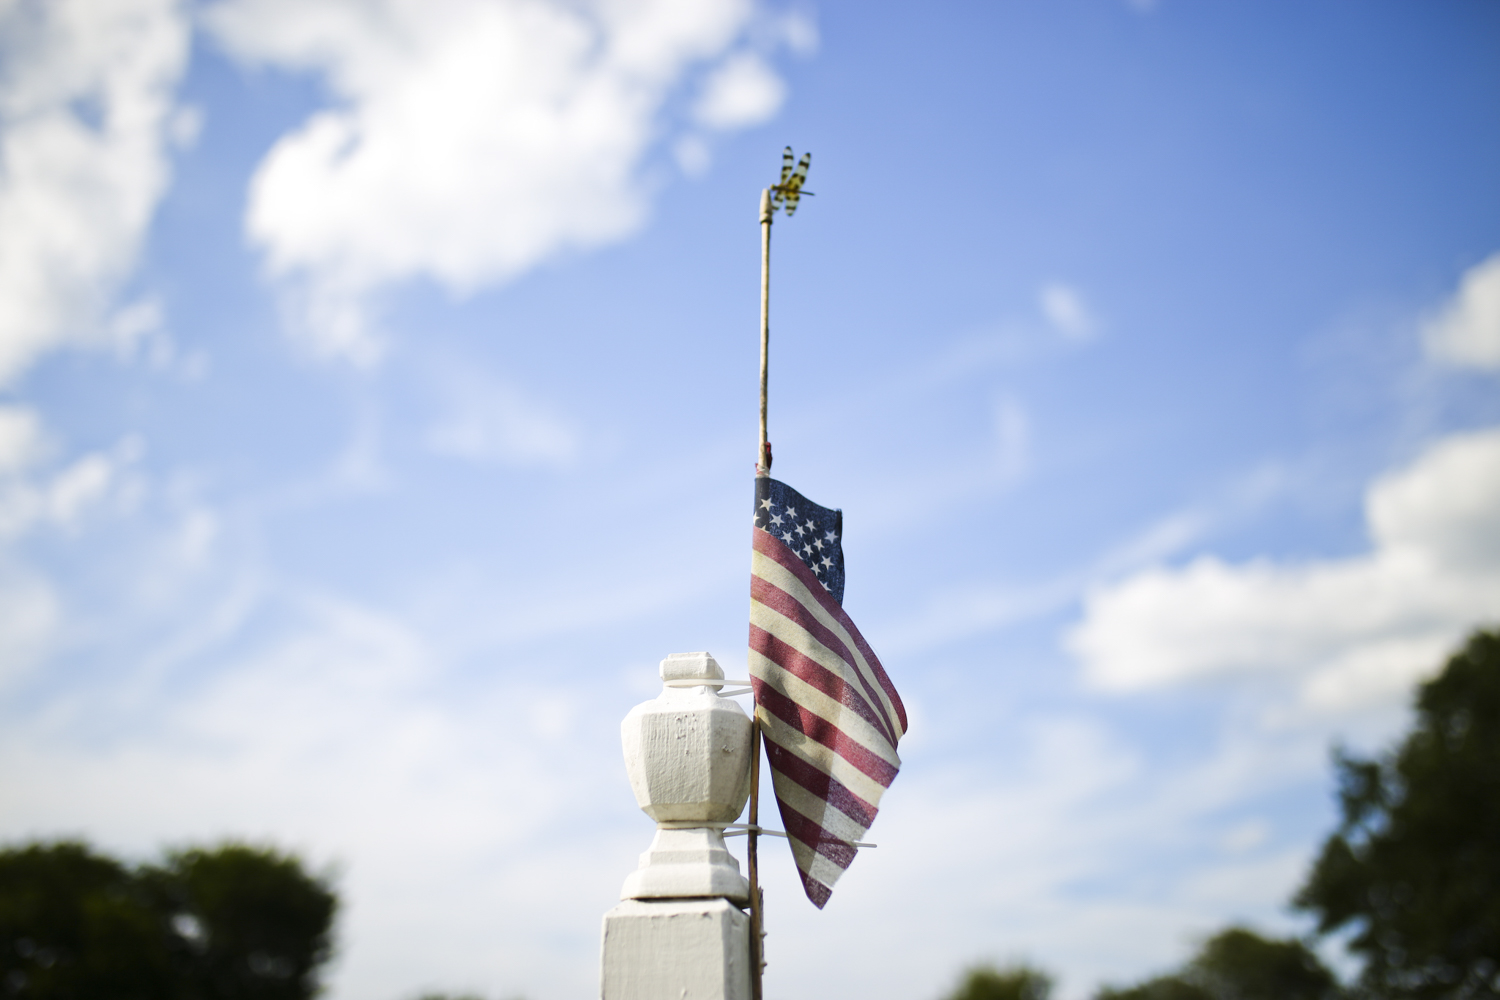 What appears to be a Halloween pennant dragonfly, an insect native to eastern North America, rests on the tip of an American flag attached to the welcome sign at Pocahontas Island neighborhood in Petersburg on Monday, July 24, 2017. [Scott P. Yates/progress-index.com]